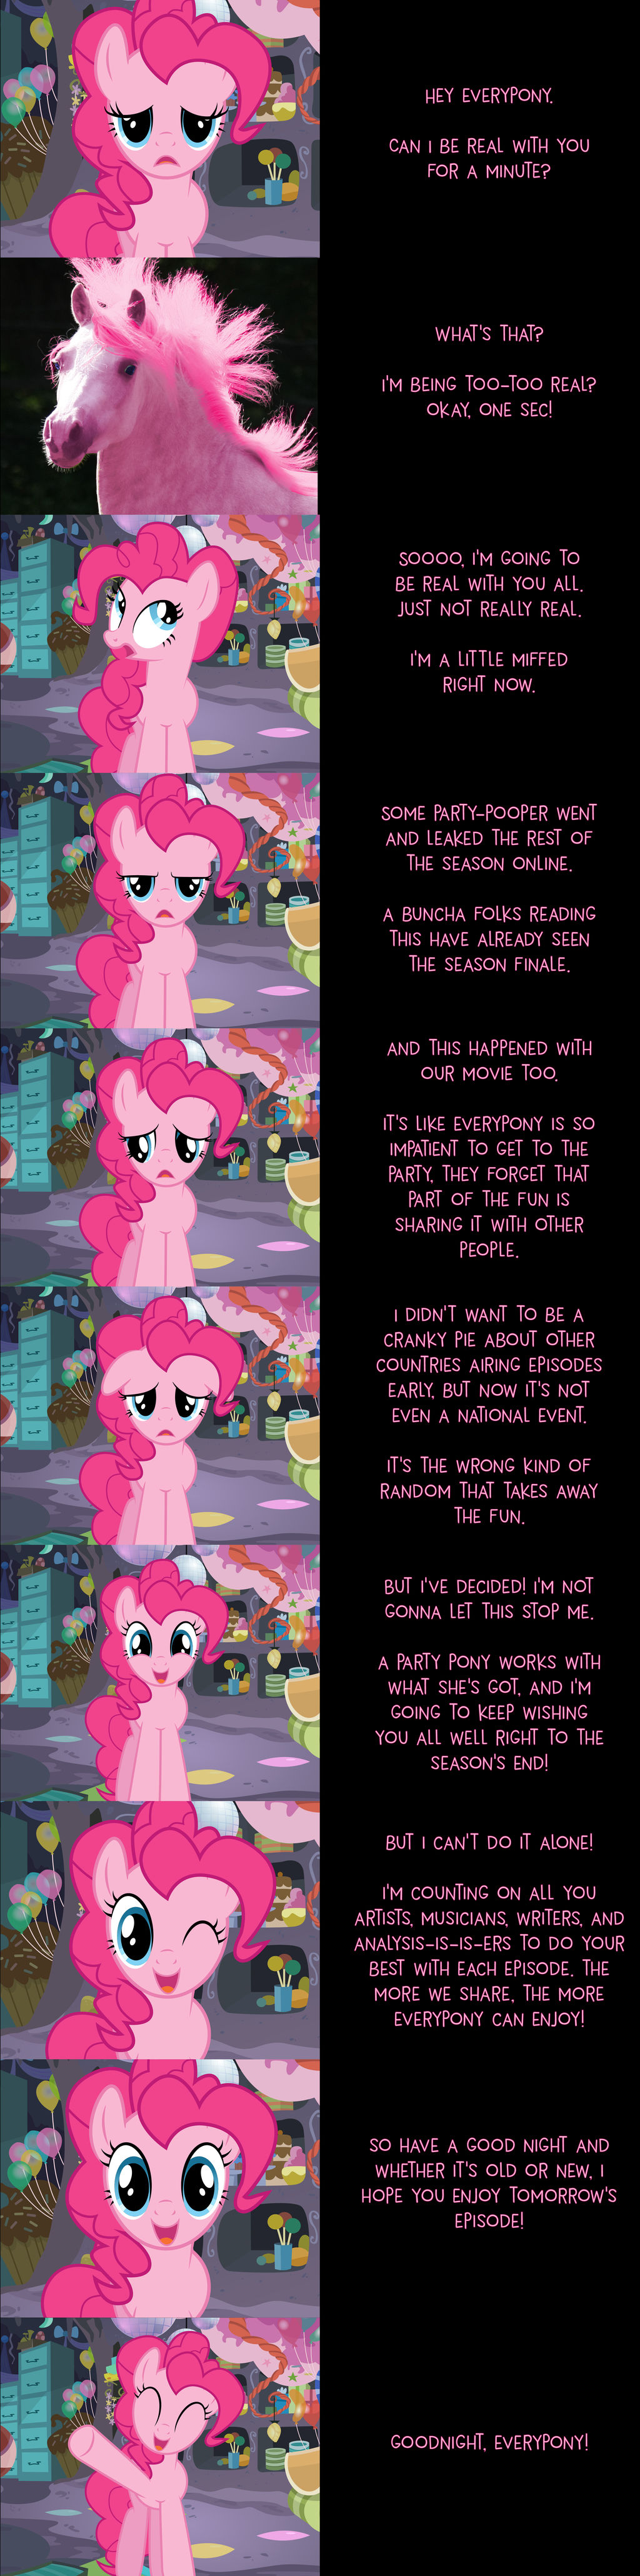 Pinkie Pie Says Goodnight: Being Real